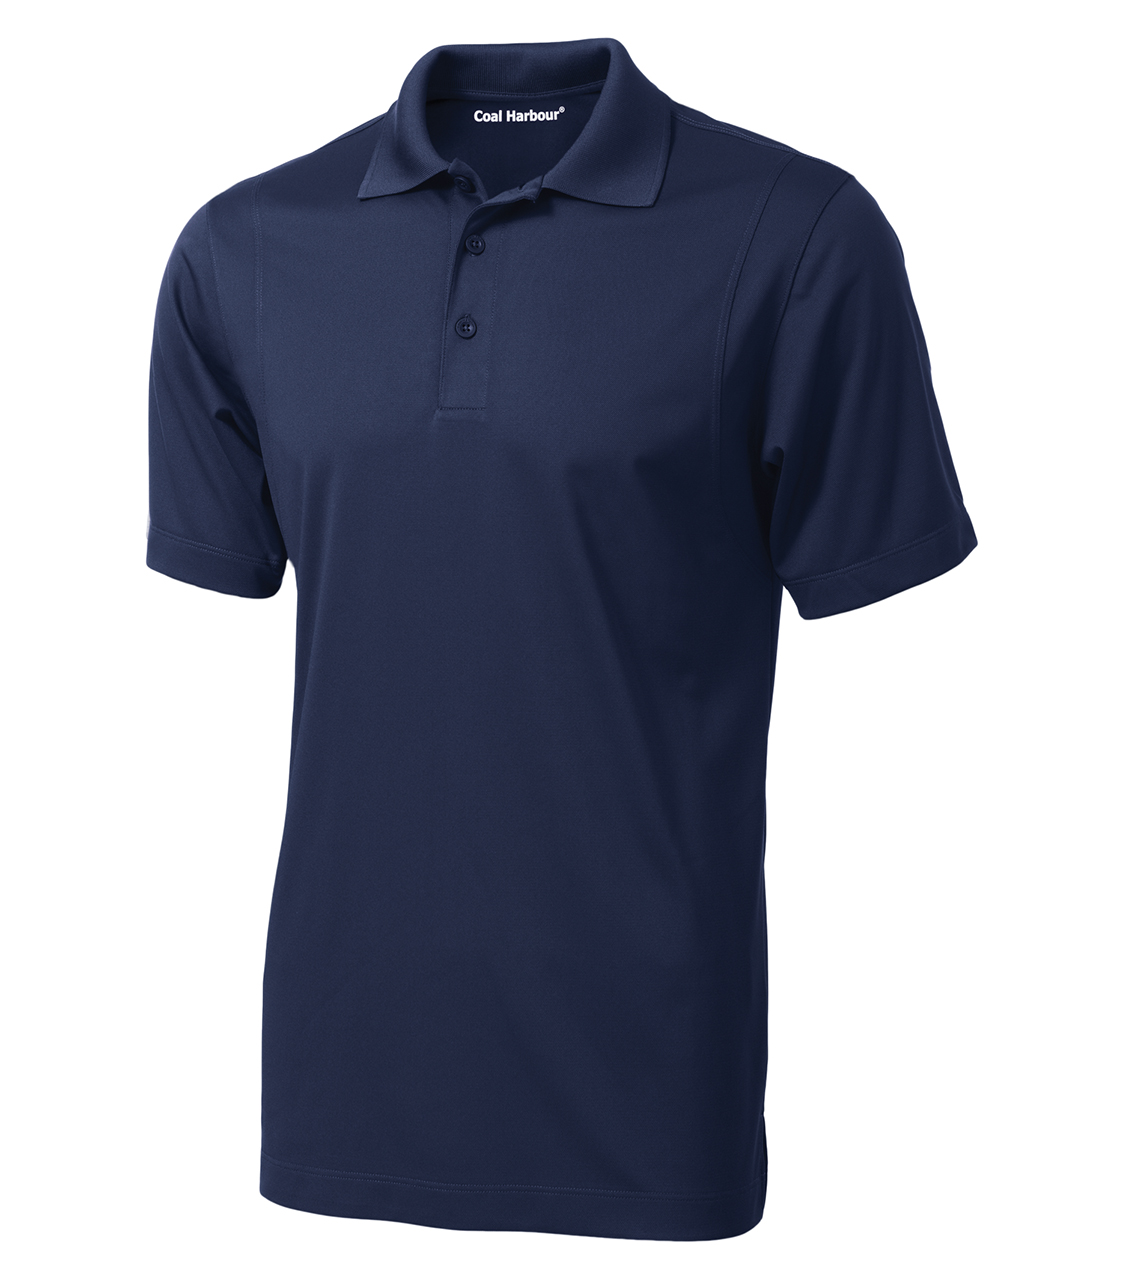 Picture of Coal Harbour Snag Resistant Tall Sport Shirt